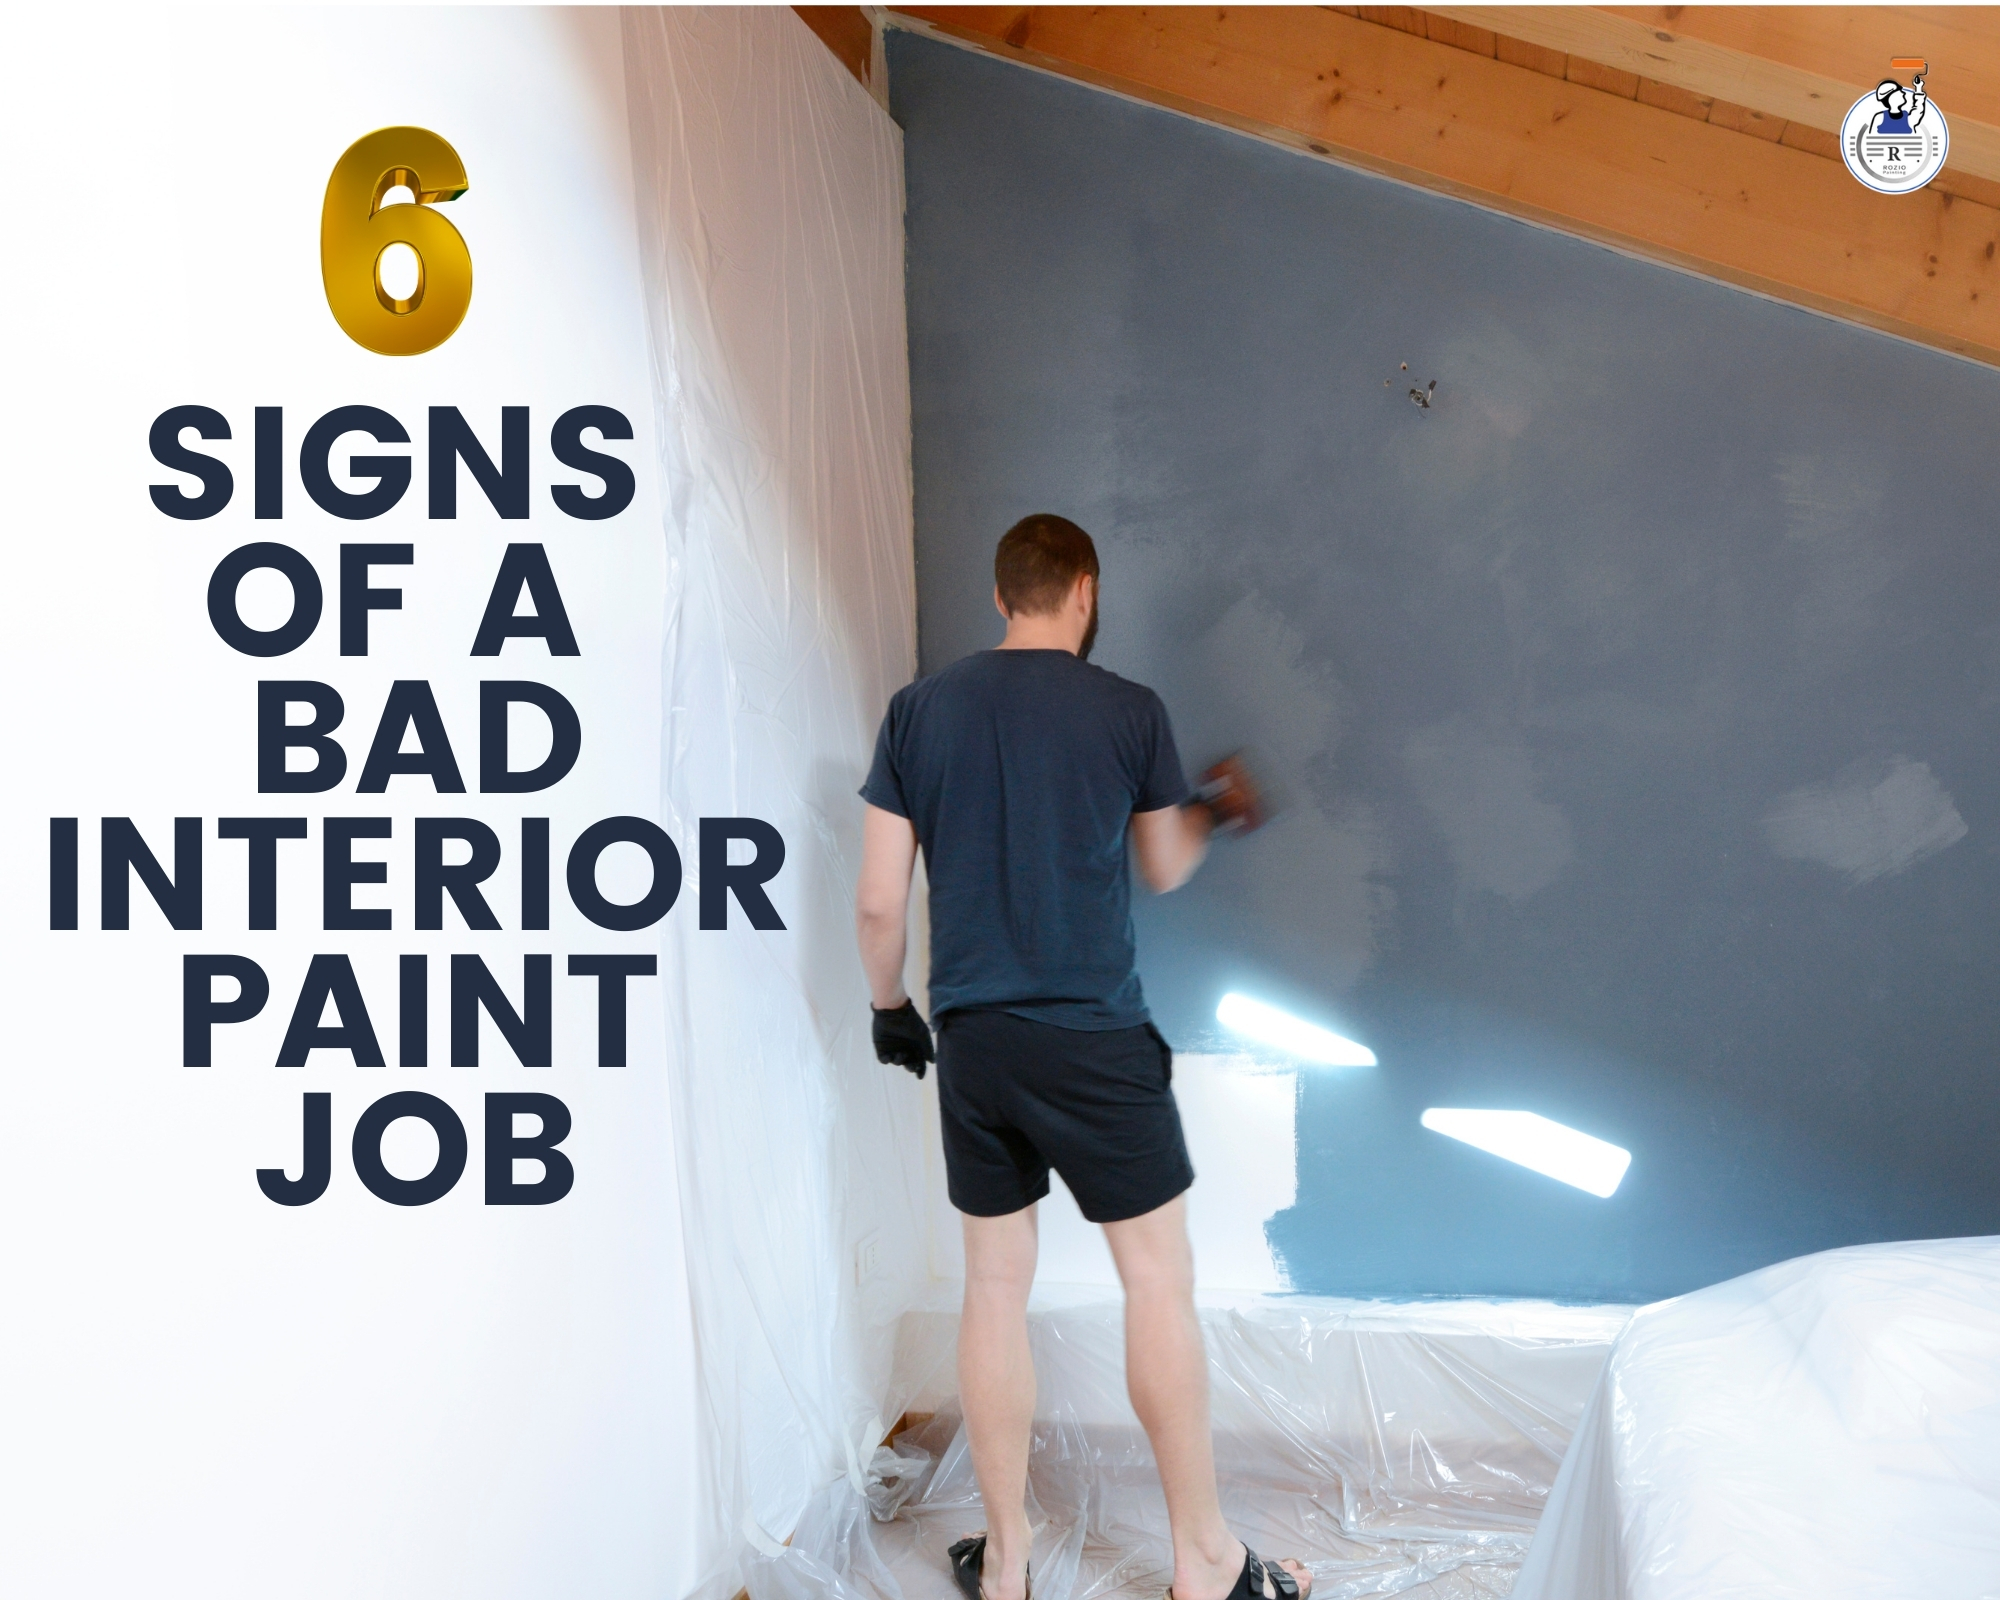 6 Signs of Bad Interior Paint Job